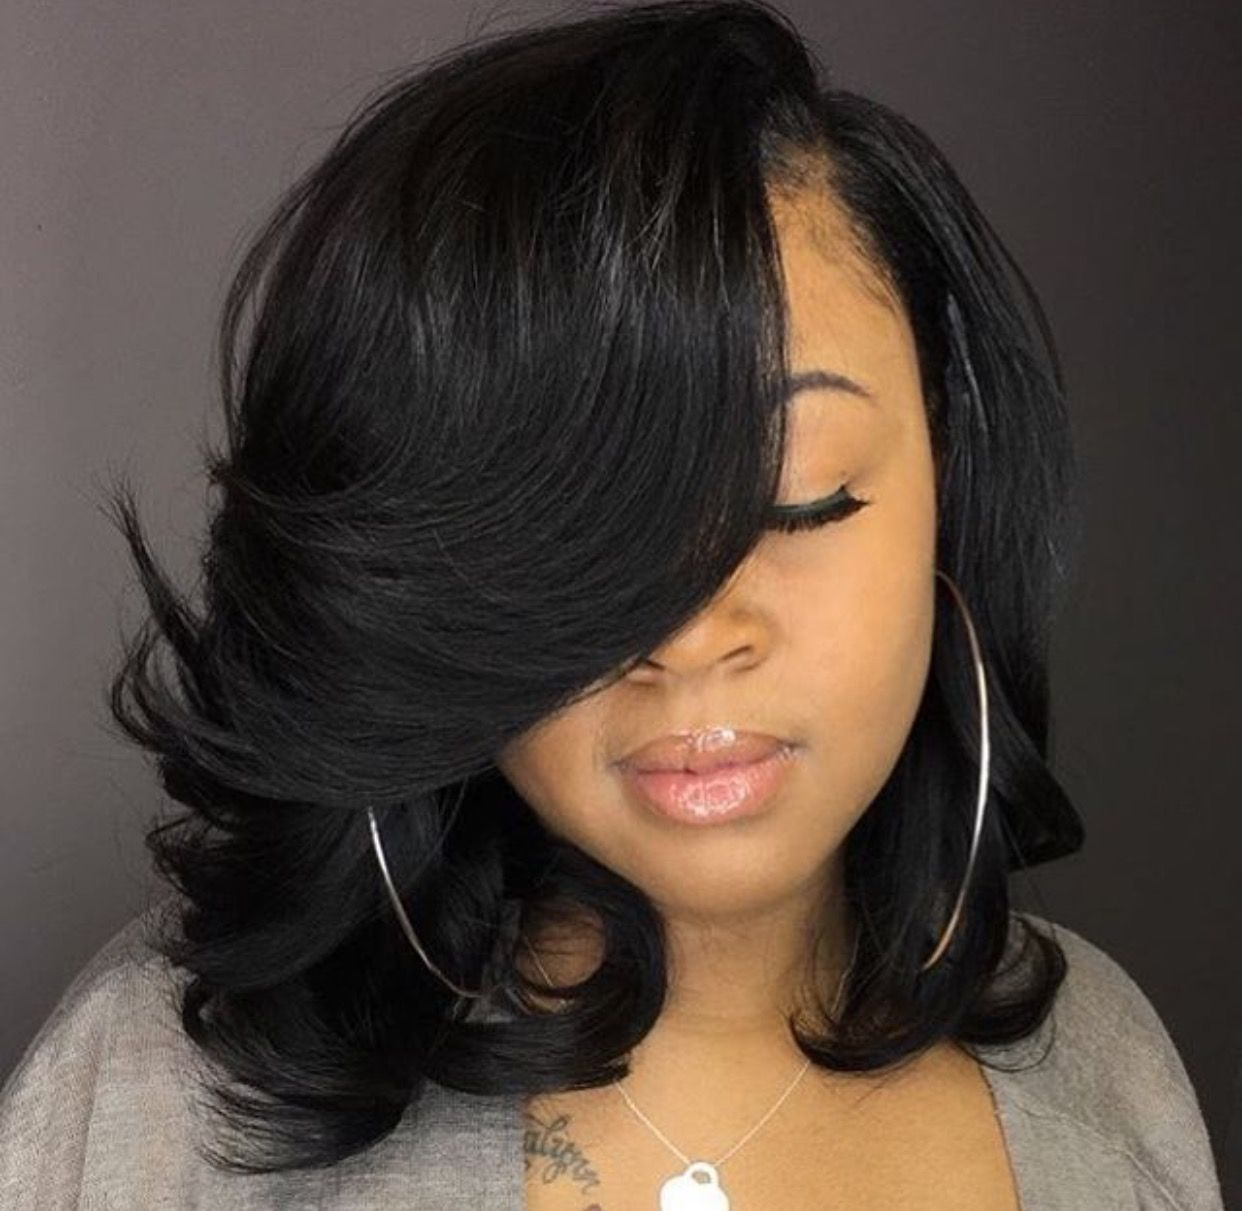 Natural looking hairstyles cuts pinterest natural bobs and wavy bob with side bangs wigs for black women human hair wigs lace front wigs african american women wigs black girl natural bob hairstyles pmusecretfo Gallery